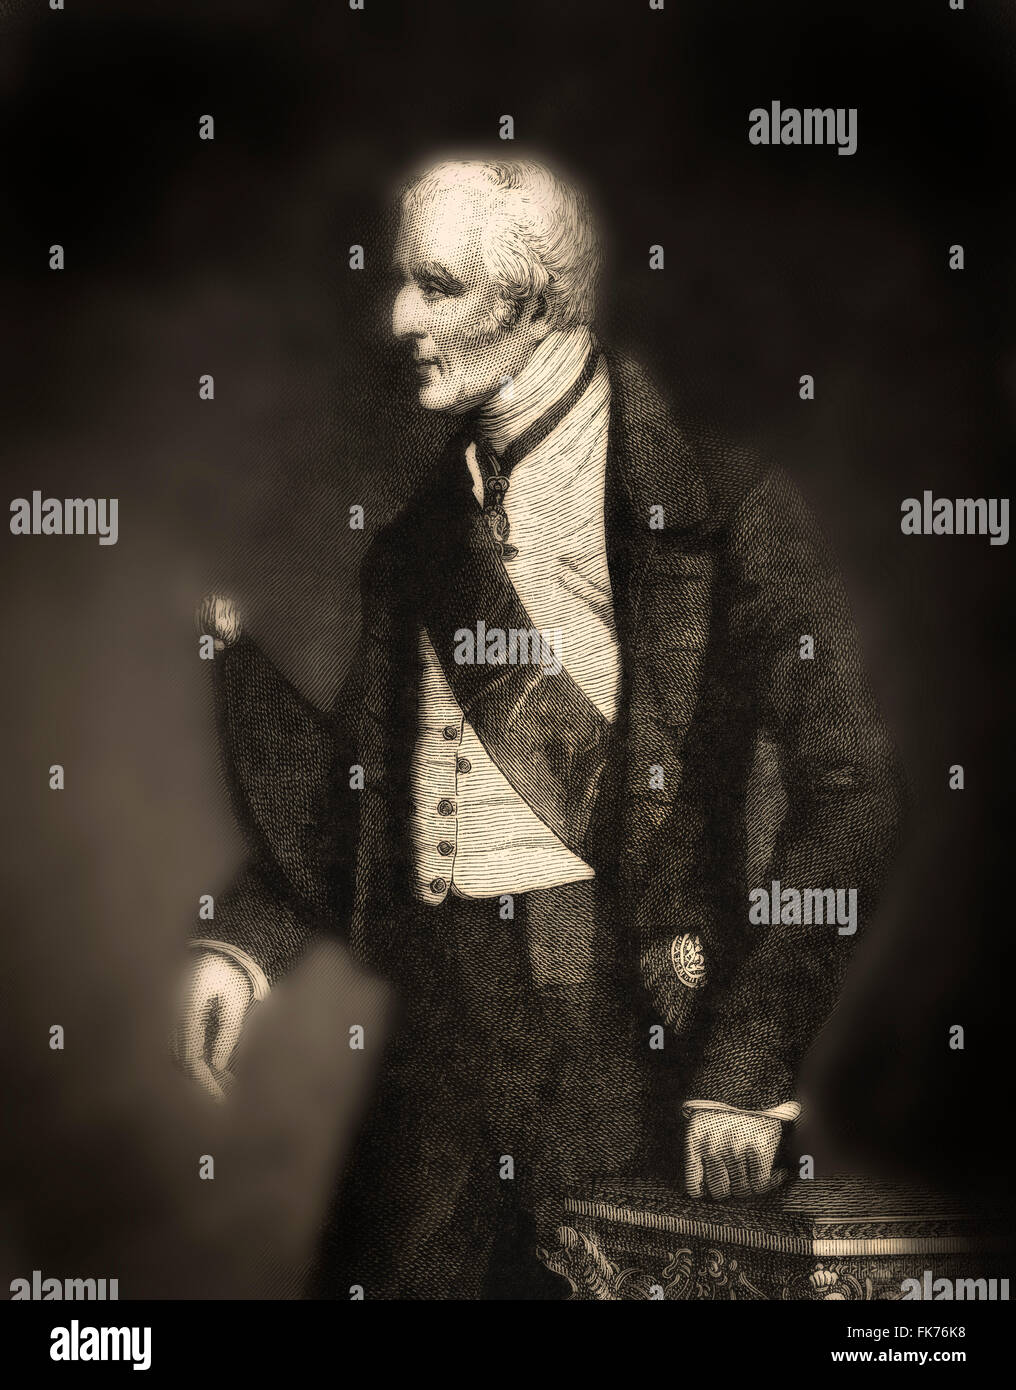 Arthur Wellesley, 1st Duke of Wellington, 1769-1852, field marshal and a British military leader, foreign minister - Stock Image